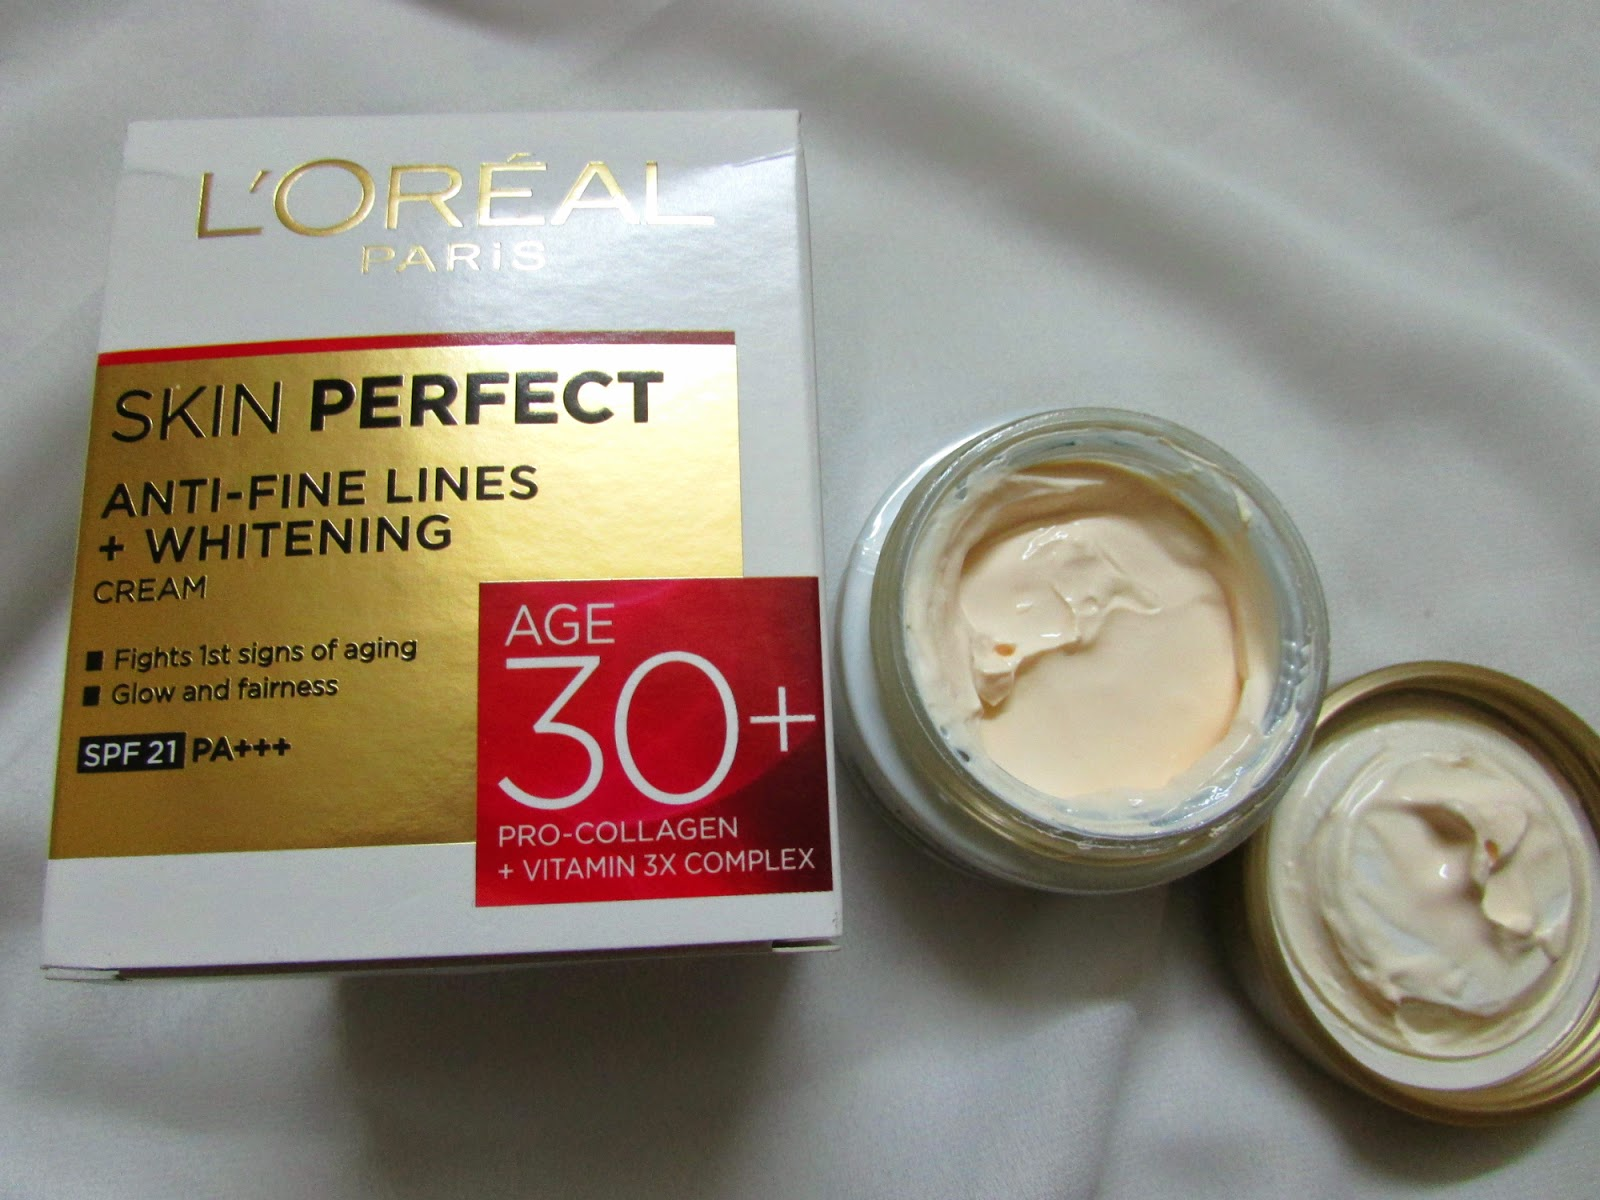 Loreal Skin Perfect Creams,Loreal Paris Skin Perfect Anti Imperfections + Whitening Cream Age 20+, Loreal Paris Skin Perfect Anti Fine Lines + Whitening Cream Age 30+, Loreal Paris Skin Perfect Anti Aging + Whitening Cream Age 40+, Loreal Skin Perfect Cream price review, anti aging cream, cream, anti aging treatment, best anti aging cream, sunscreen cream, beauty , fashion,beauty and fashion,beauty blog, fashion blog , indian beauty blog,indian fashion blog, beauty and fashion blog, indian beauty and fashion blog, indian bloggers, indian beauty bloggers, indian fashion bloggers,indian bloggers online, top 10 indian bloggers, top indian bloggers,top 10 fashion bloggers, indian bloggers on blogspot,home remedies, how to